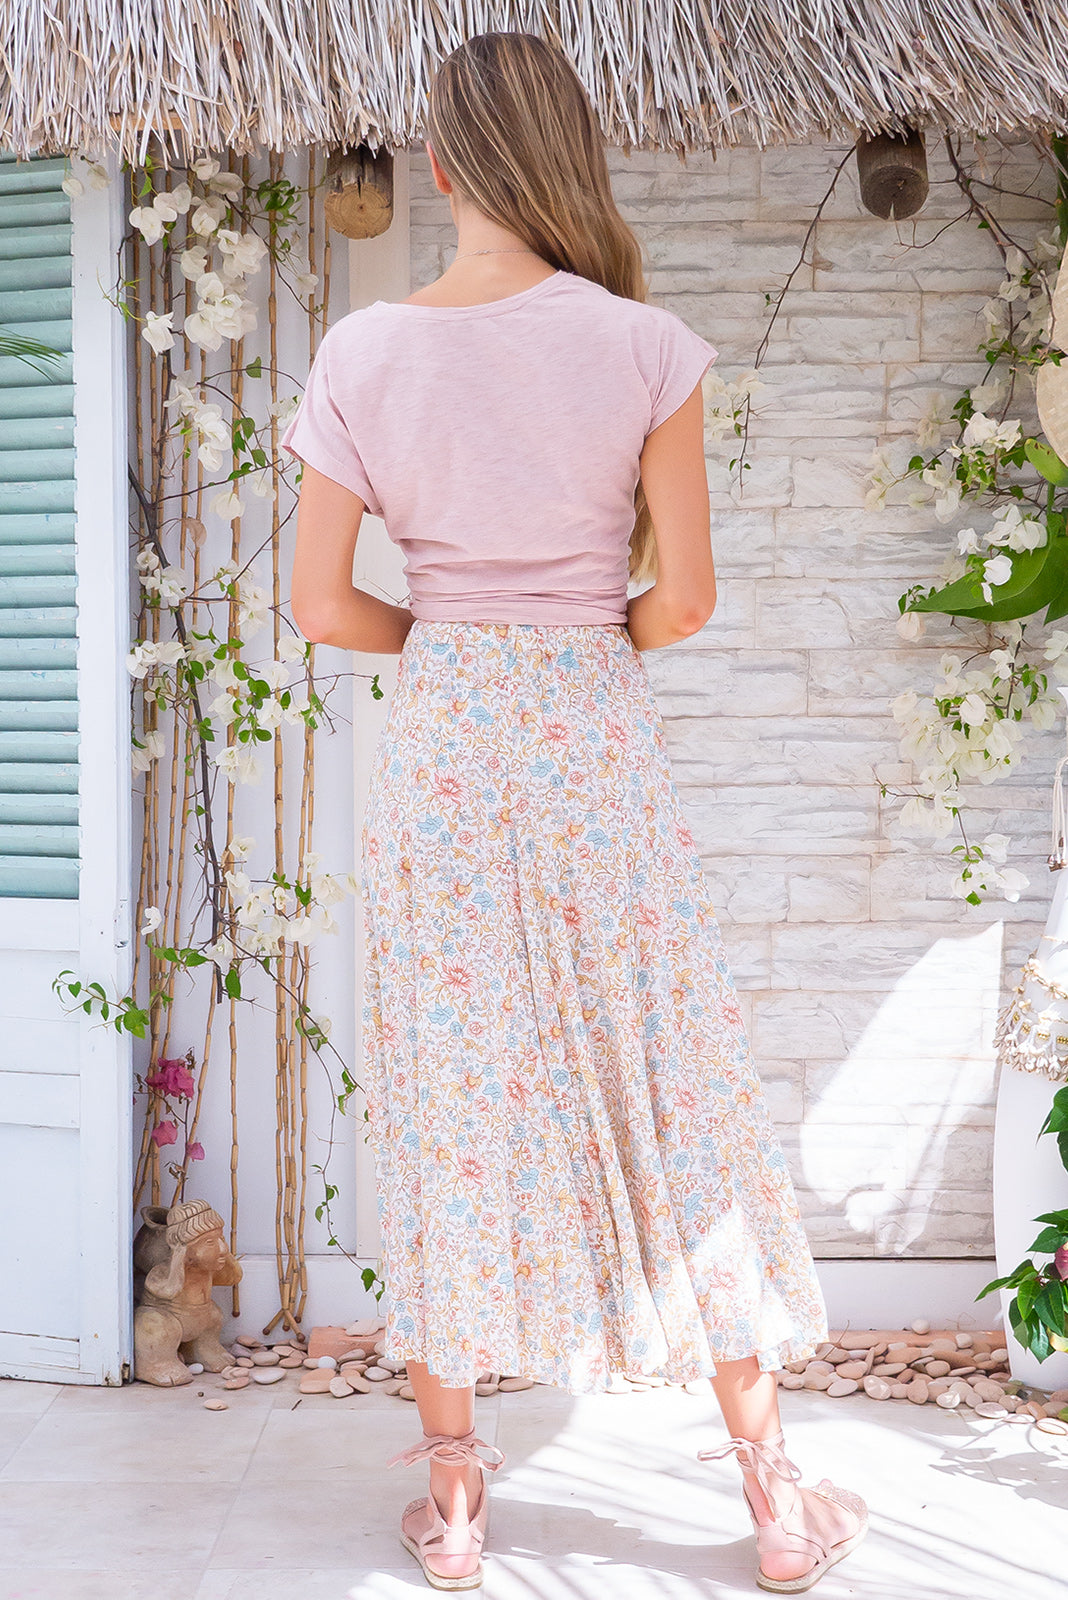 Avalon Milk & Honey Skirt, bohemian summer style, 100% rayon, deep side pockets, elasticated waist with belt loops, off-white base with small pastel pink, blue, soft gold and cream floral print.